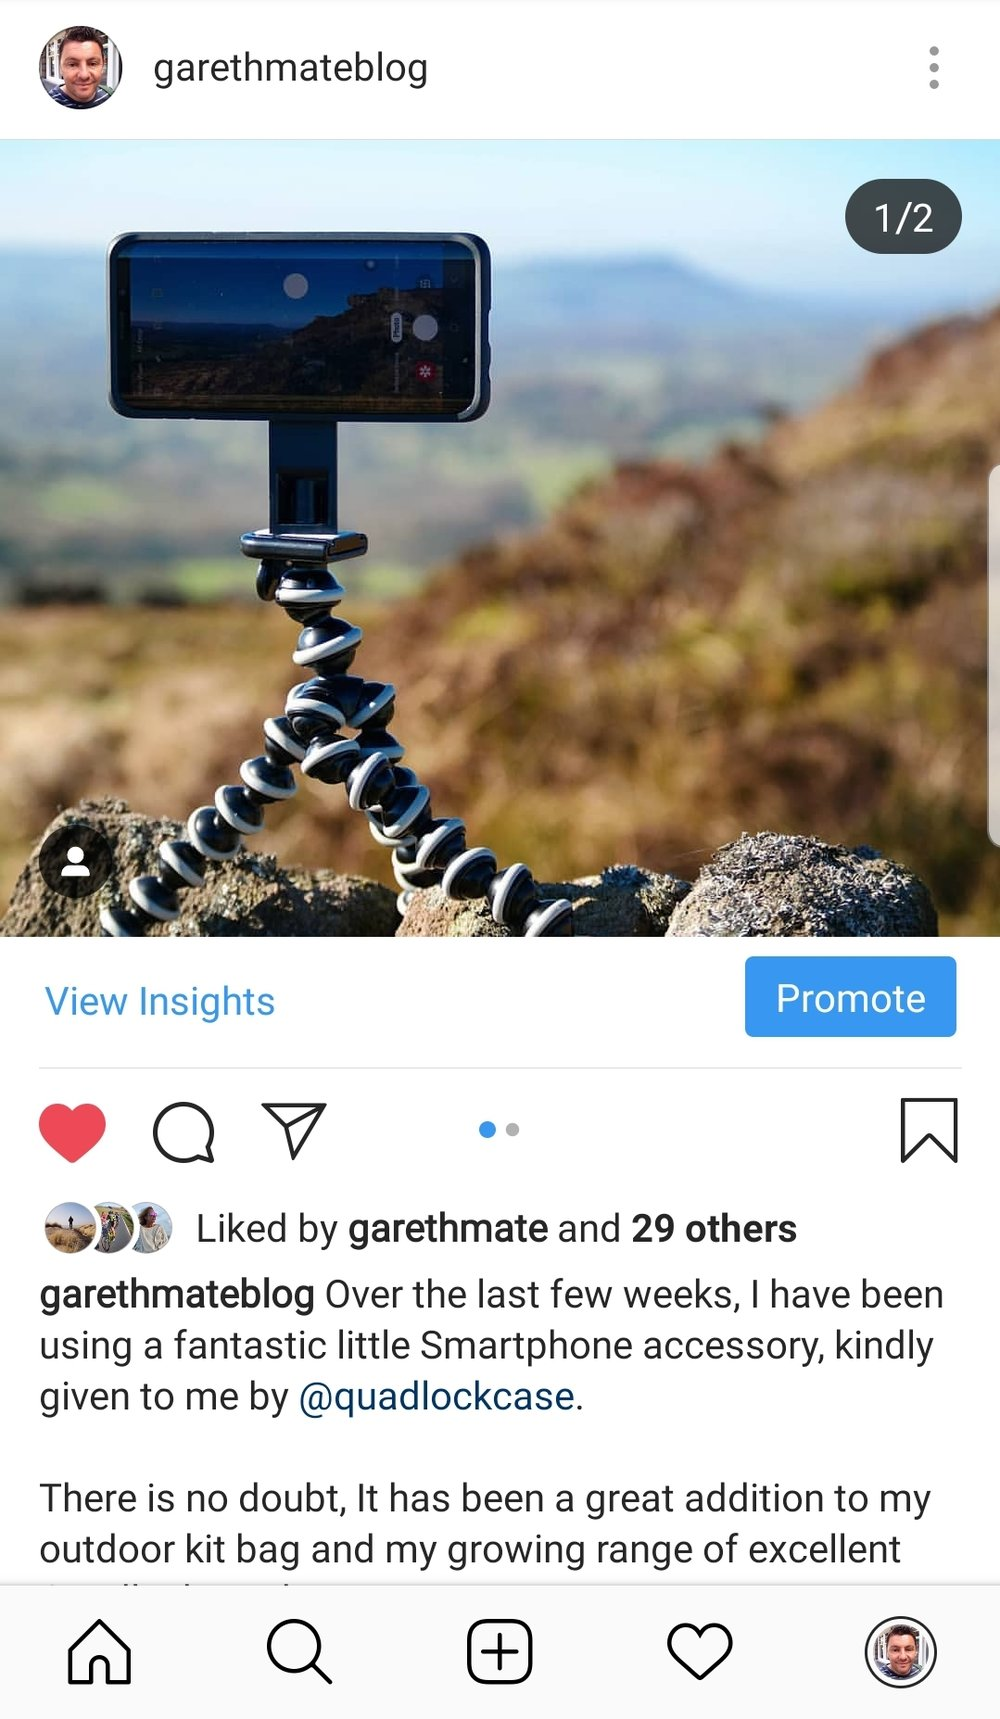 You can see more images taken with the Quadlock Smartphone Tripod on my  @garethmateblog  Instagram account.